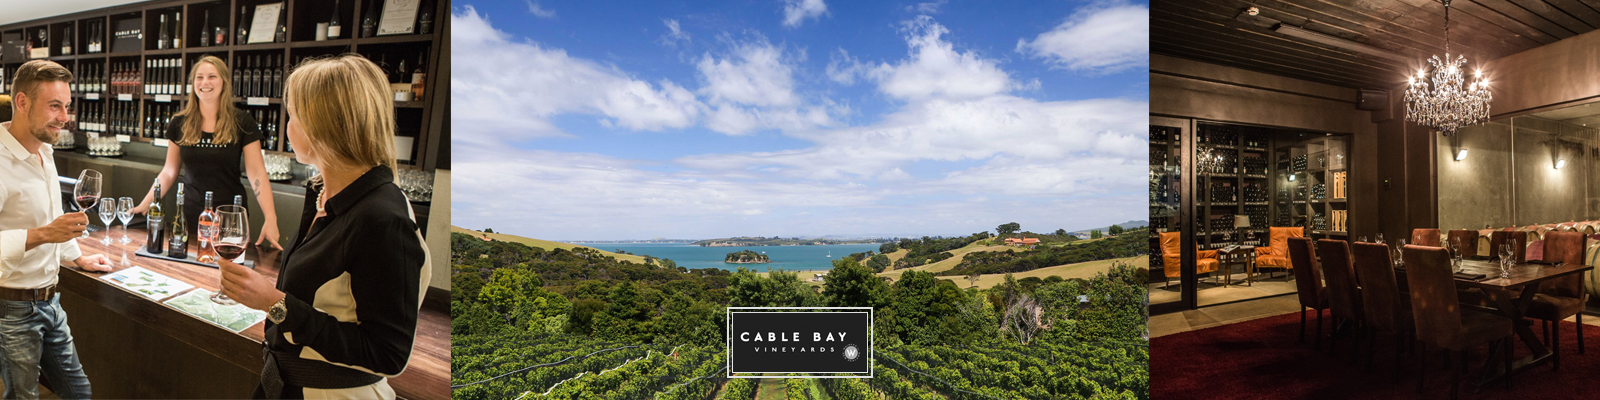 banner-cable-bay-vineyards.jpg